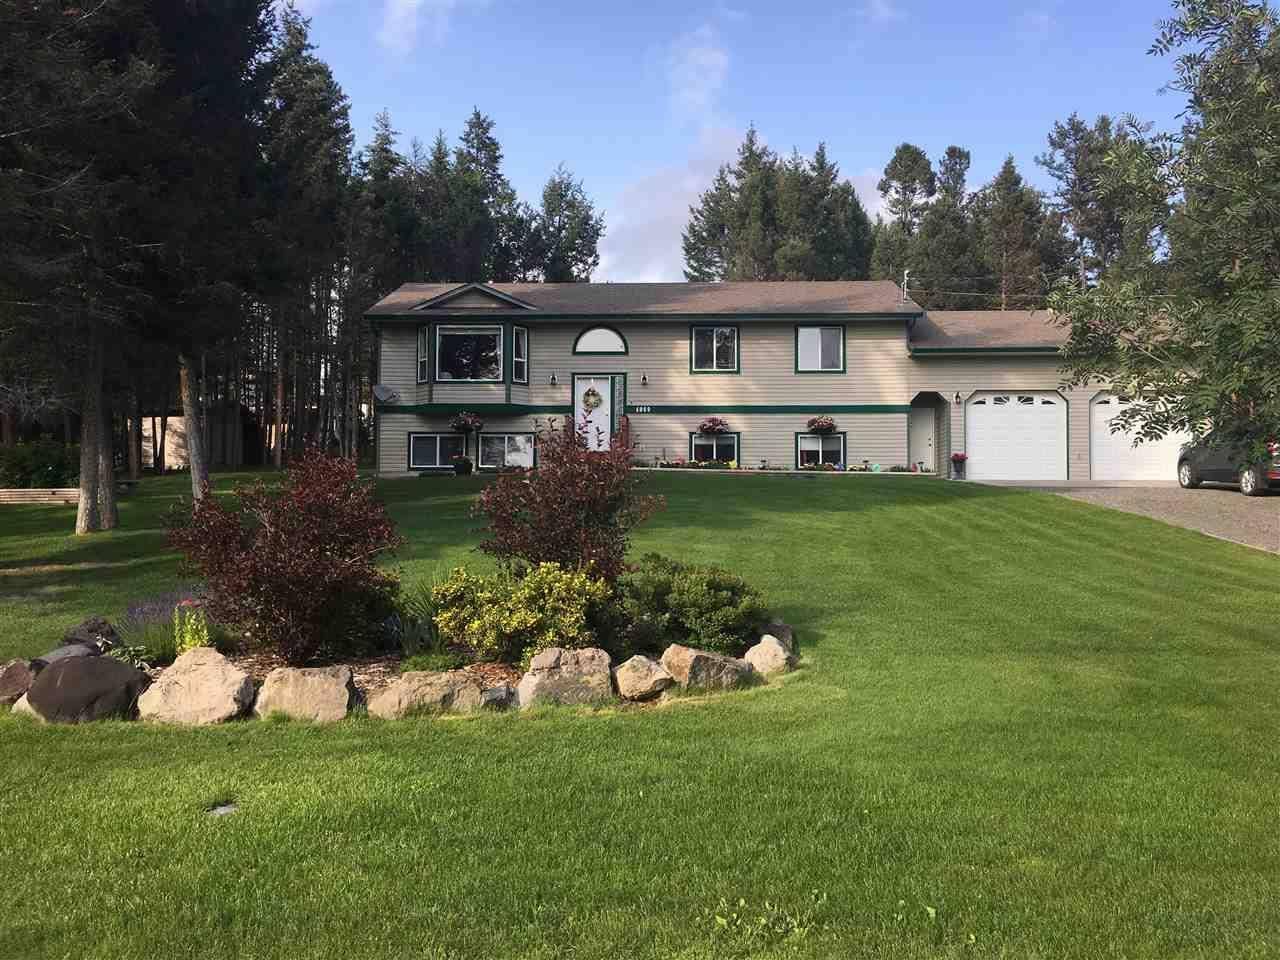 House for sale at 4869 Gloinnzun Dr 108 Mile Ranch British Columbia - MLS: R2390463